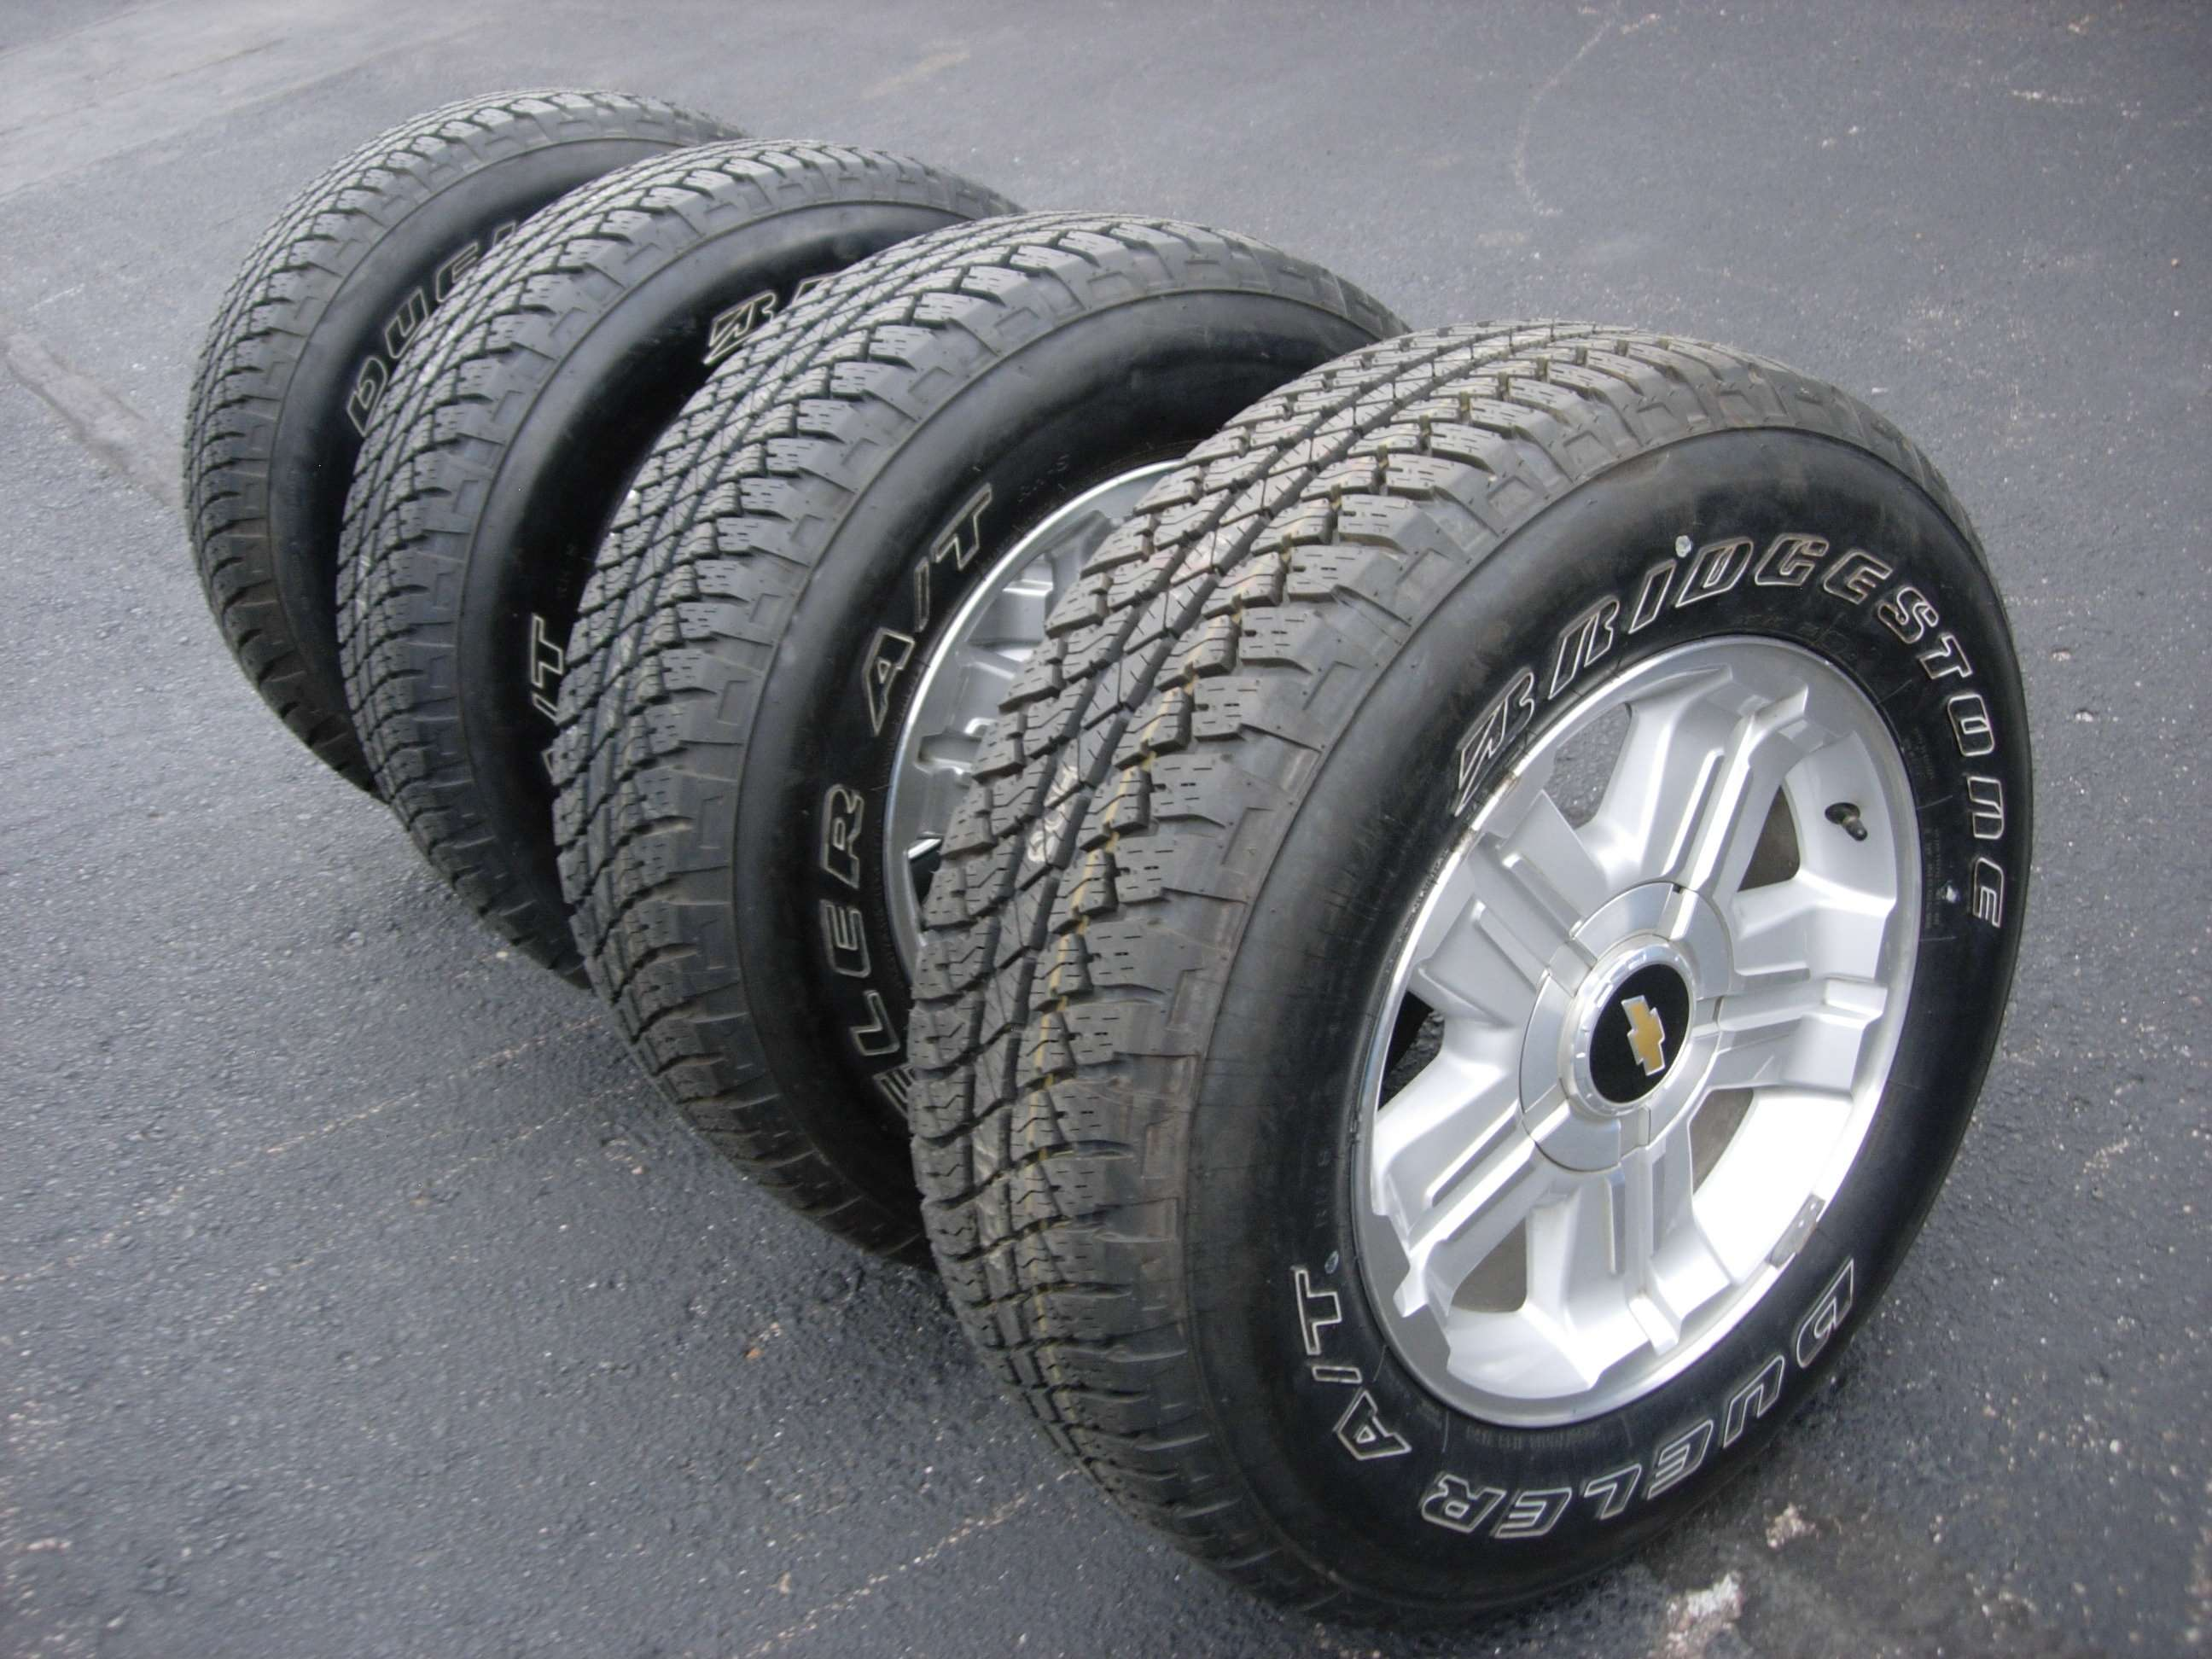 call me if you have any tires or stock rims for sell, 719 243 1678